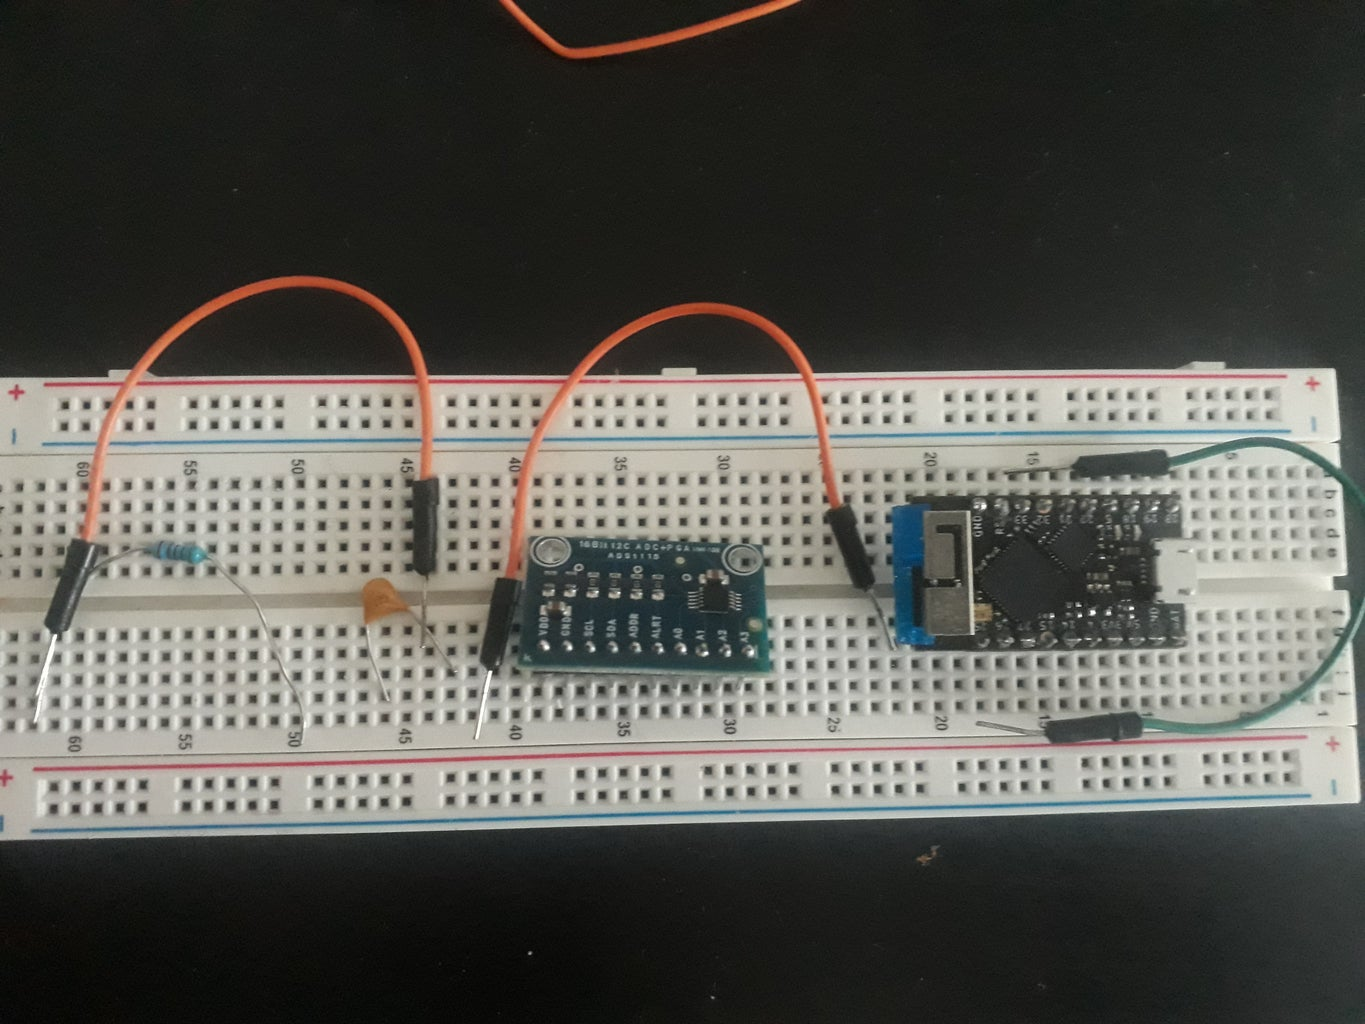 How to Make and Test a Better DAC With ESP32